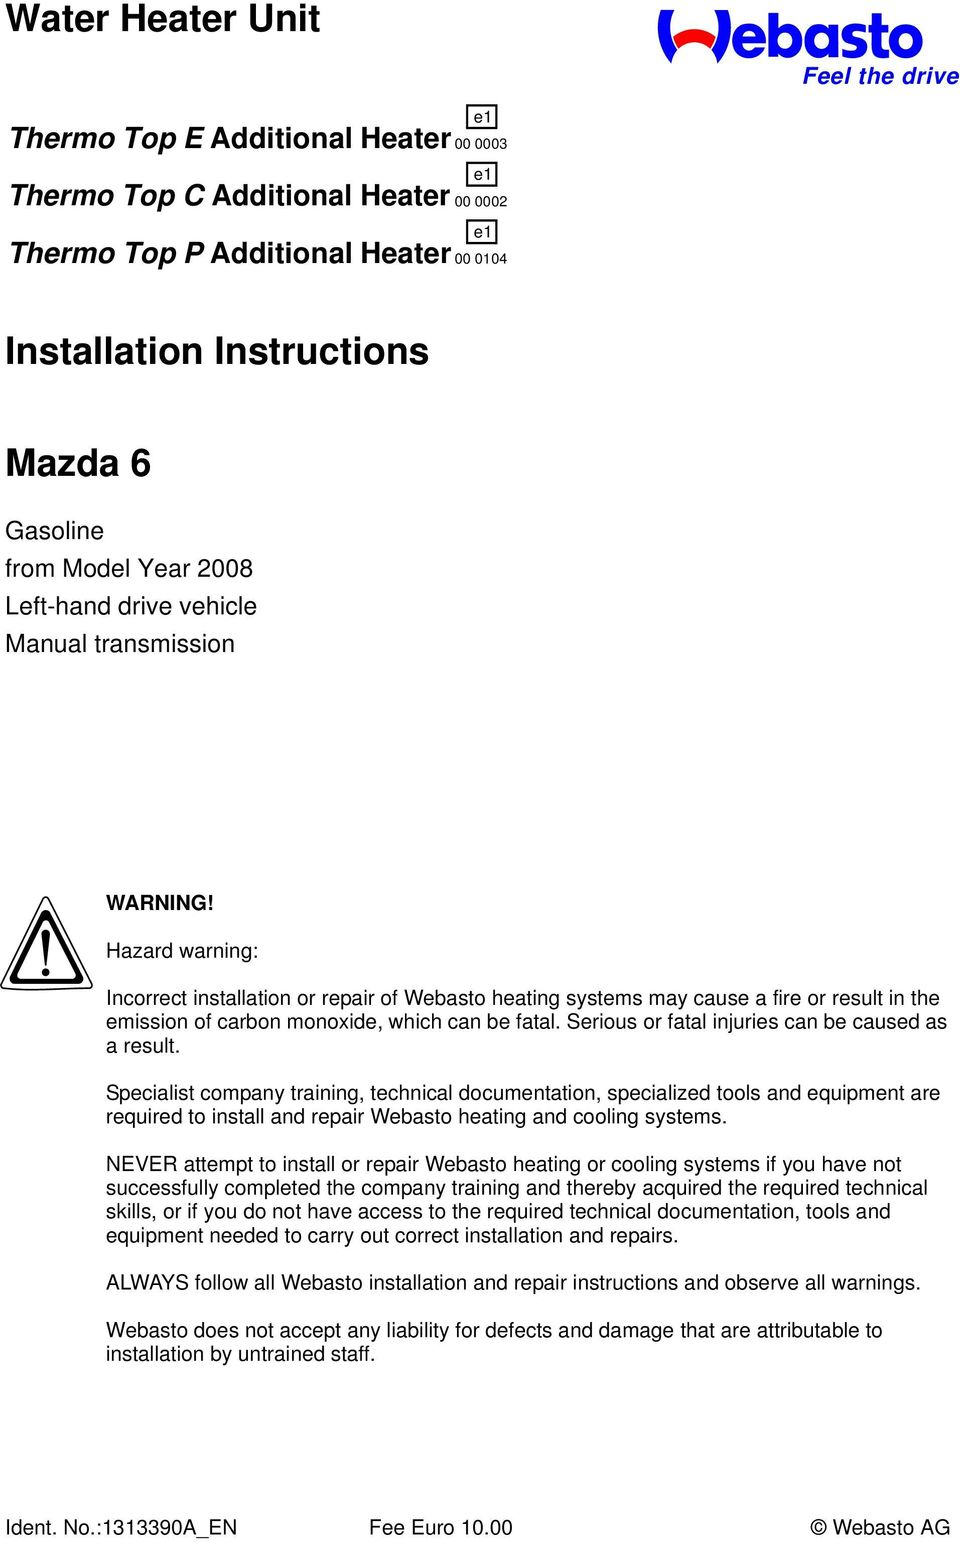 Always Follow All Webasto Installation And Repair Instructions Do You Have To Replace The Fuel Pump Filter On A 2004 Mazda 6 Hazard Warning Incorrect Or Of Heating Systems May Cause Fire